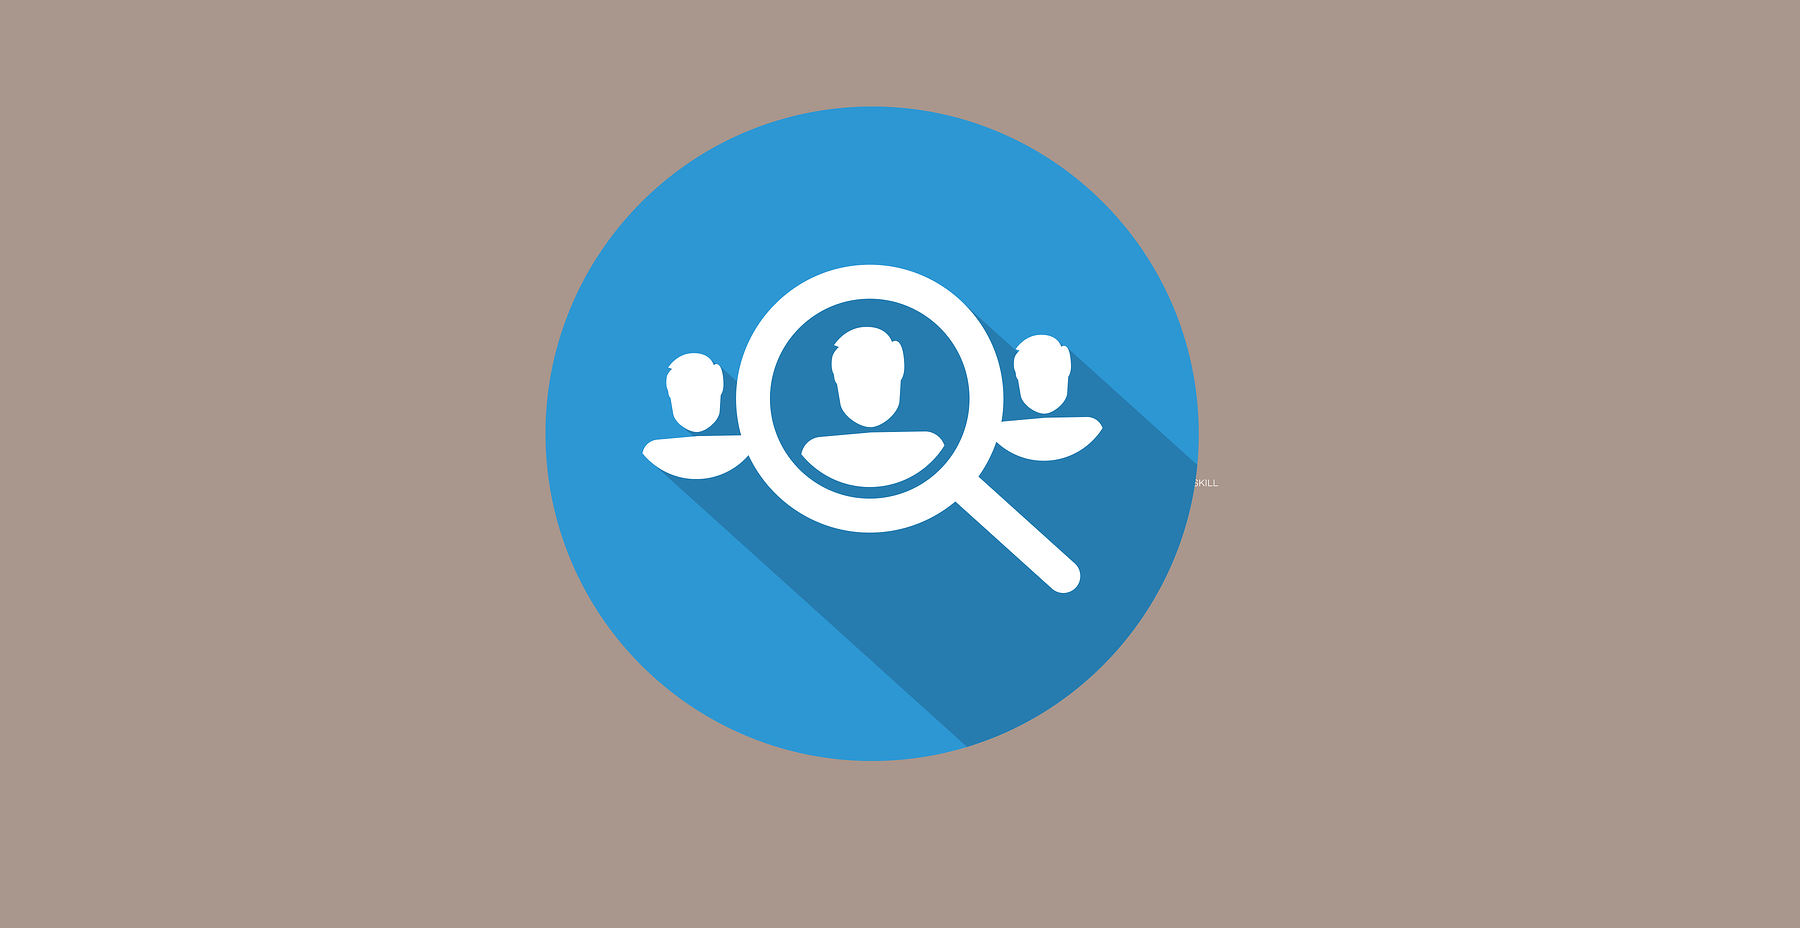 Graphic displaying three people icons and a magnifying glass magnifying the image middle person icon.